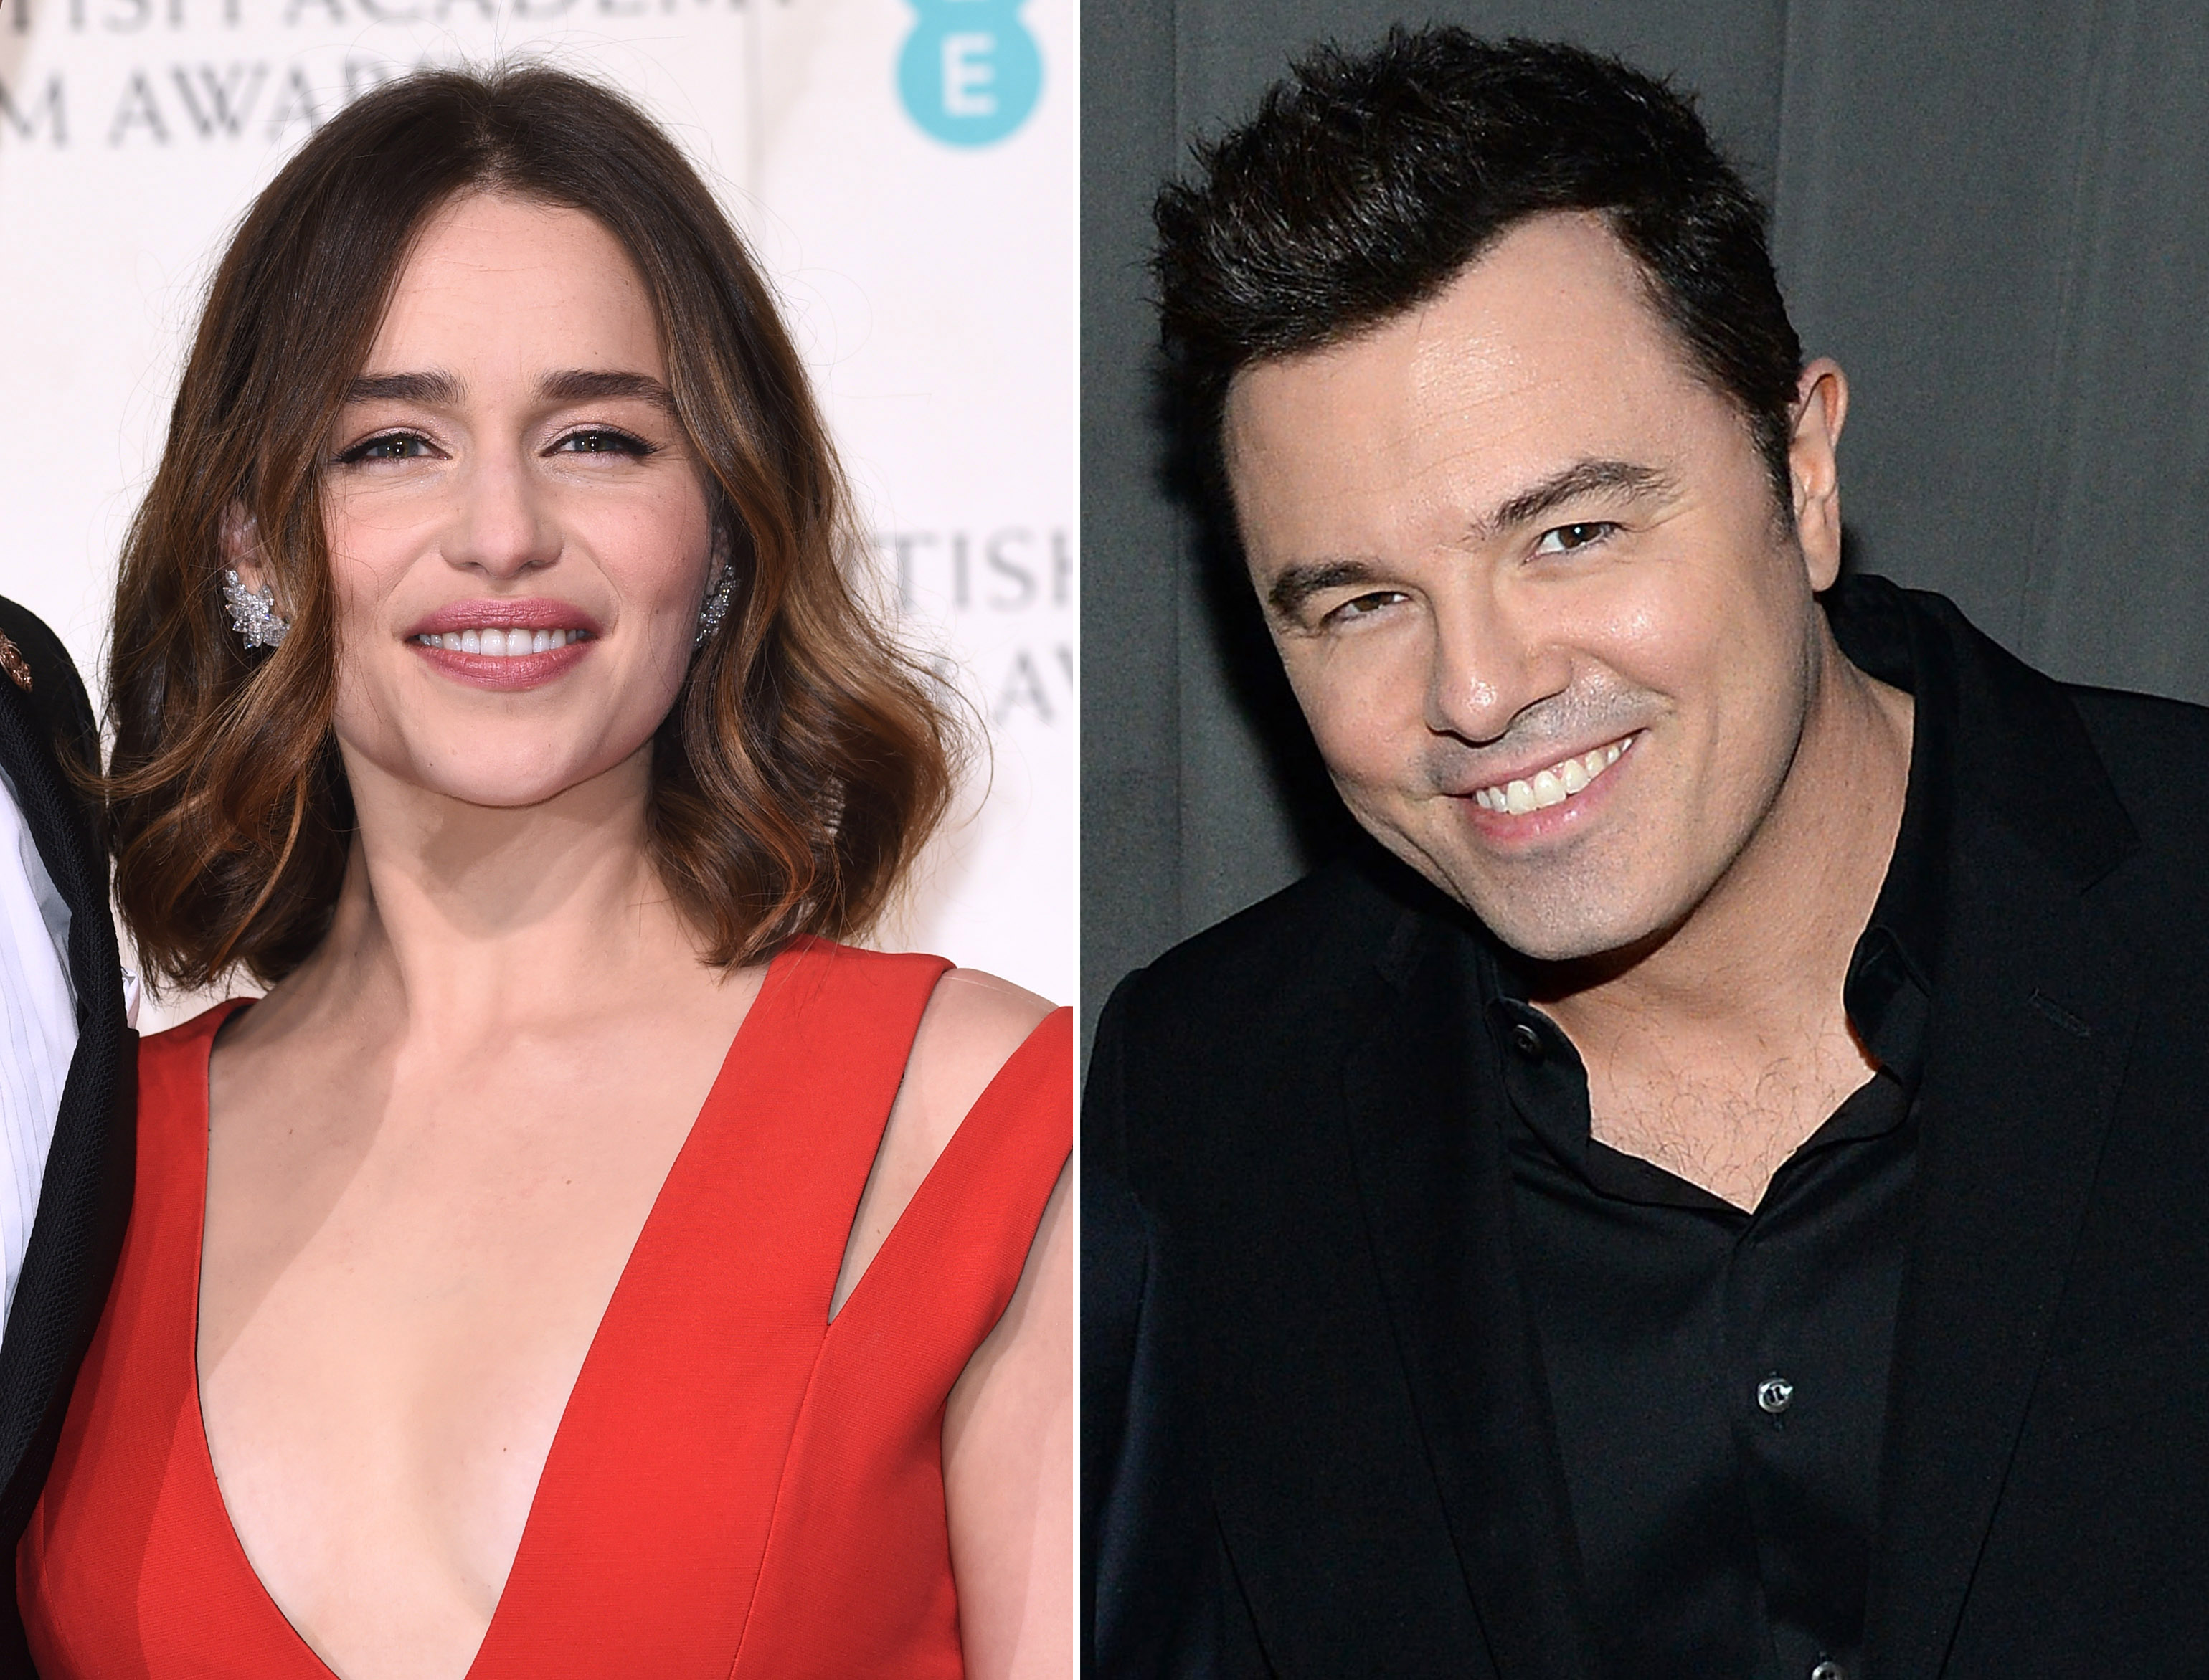 Game Of Thrones' Emilia Clarke says fans told her not to date Seth MacFarlane